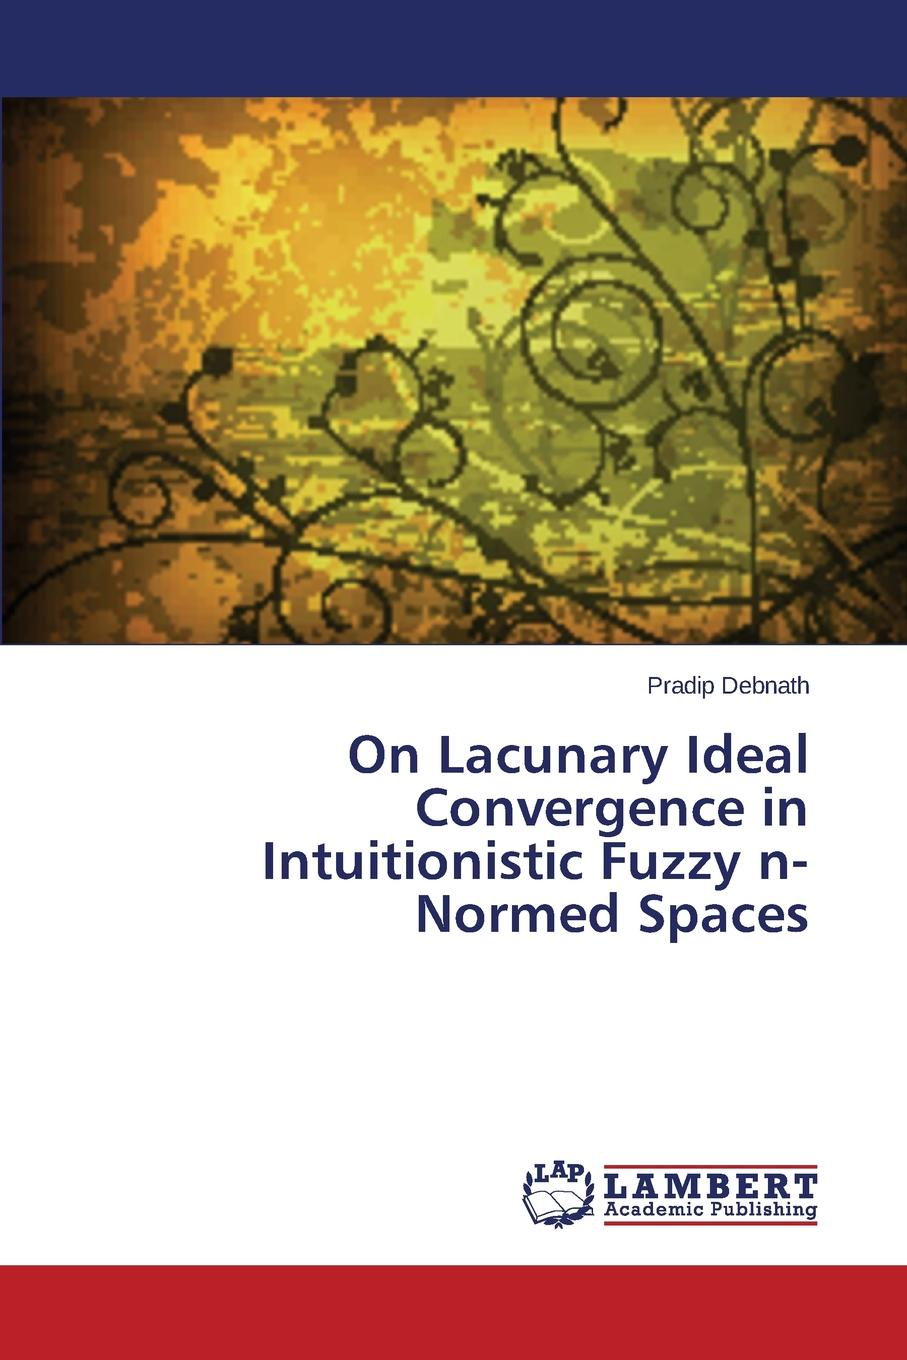 Debnath Pradip On Lacunary Ideal Convergence in Intuitionistic Fuzzy N-Normed Spaces недорго, оригинальная цена